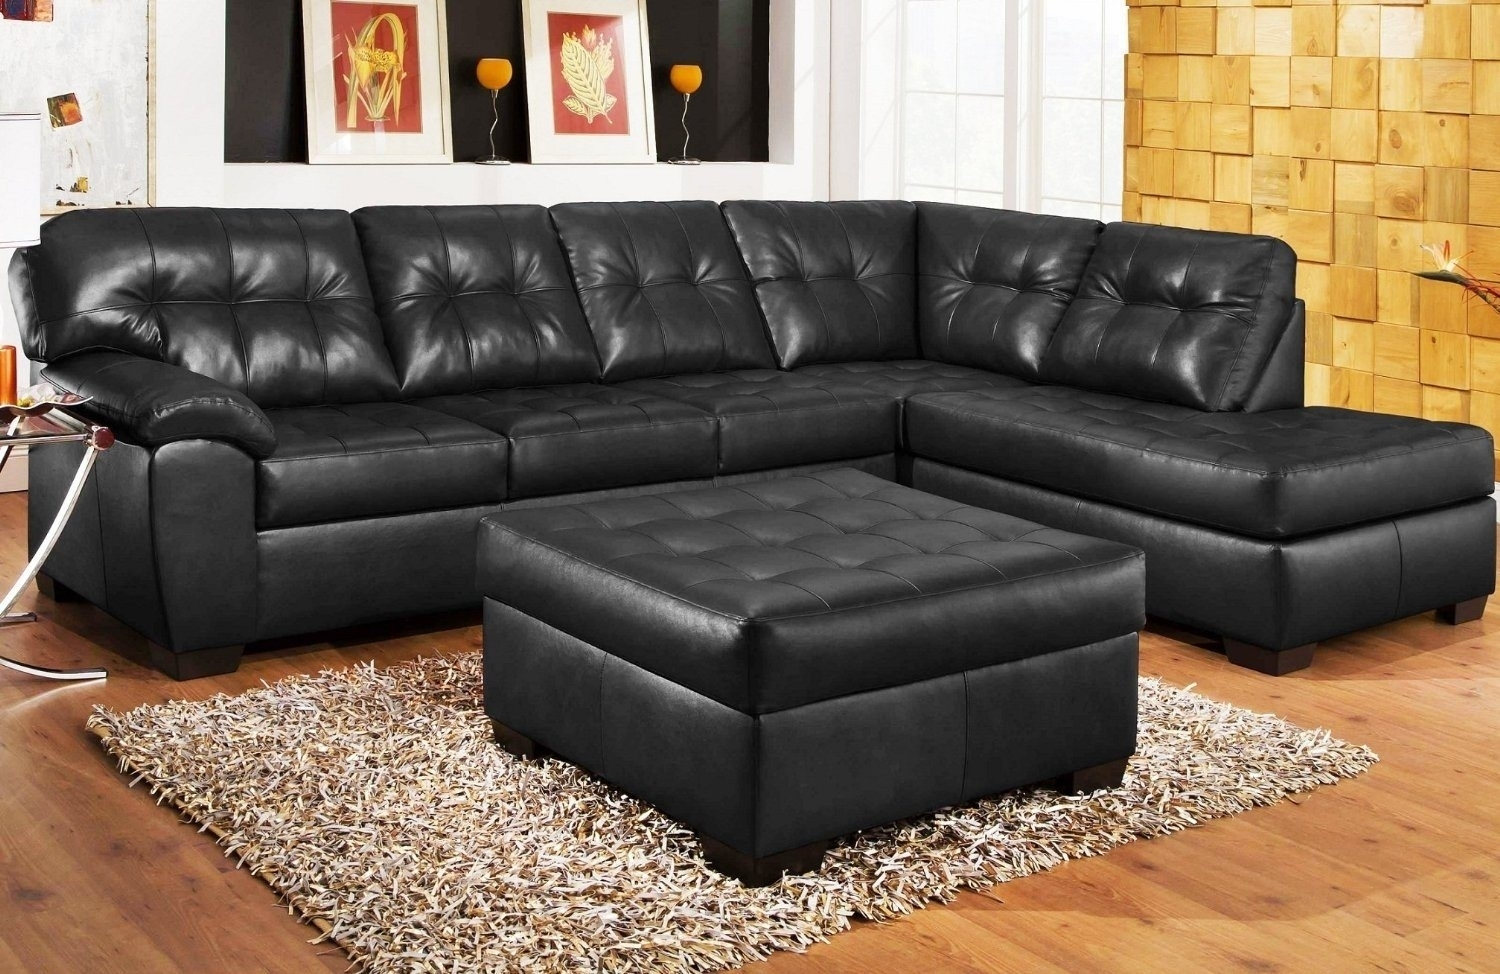 Collection Macys Leather Sectional Sofa – Mediasupload Within Macys Leather Sectional Sofas (Image 2 of 10)